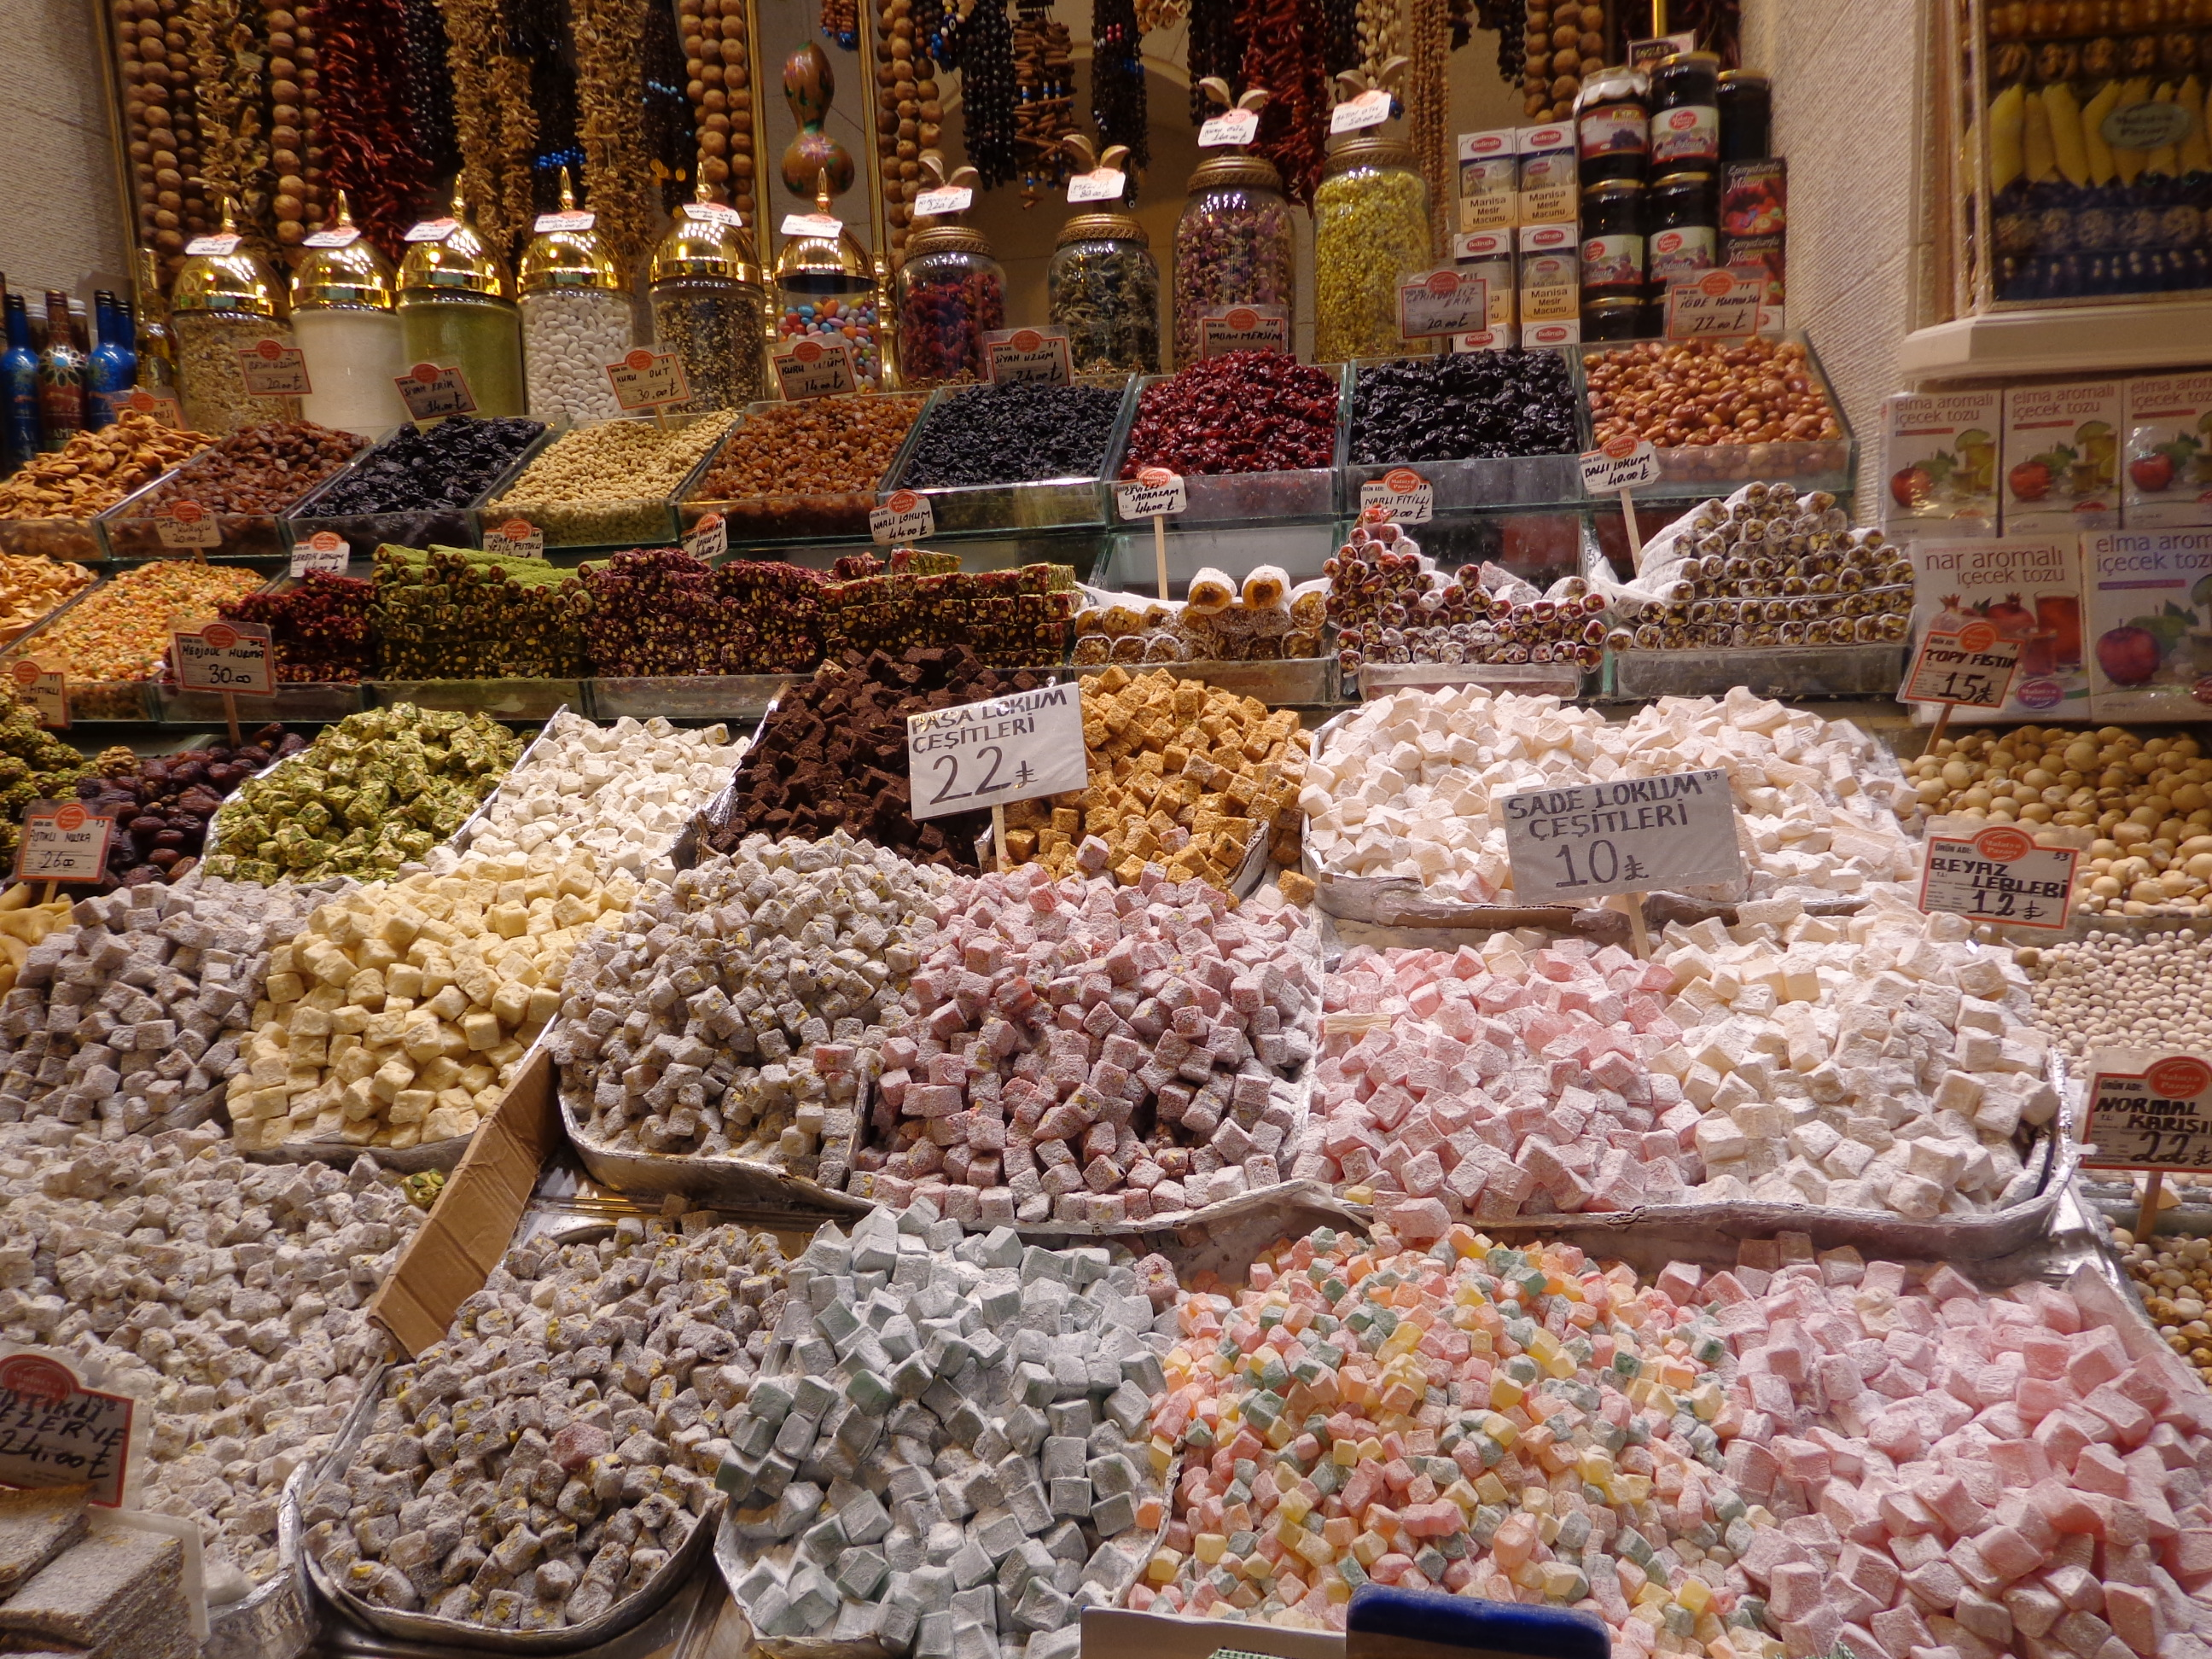 Turkish Delight on sale at the Spice Market.